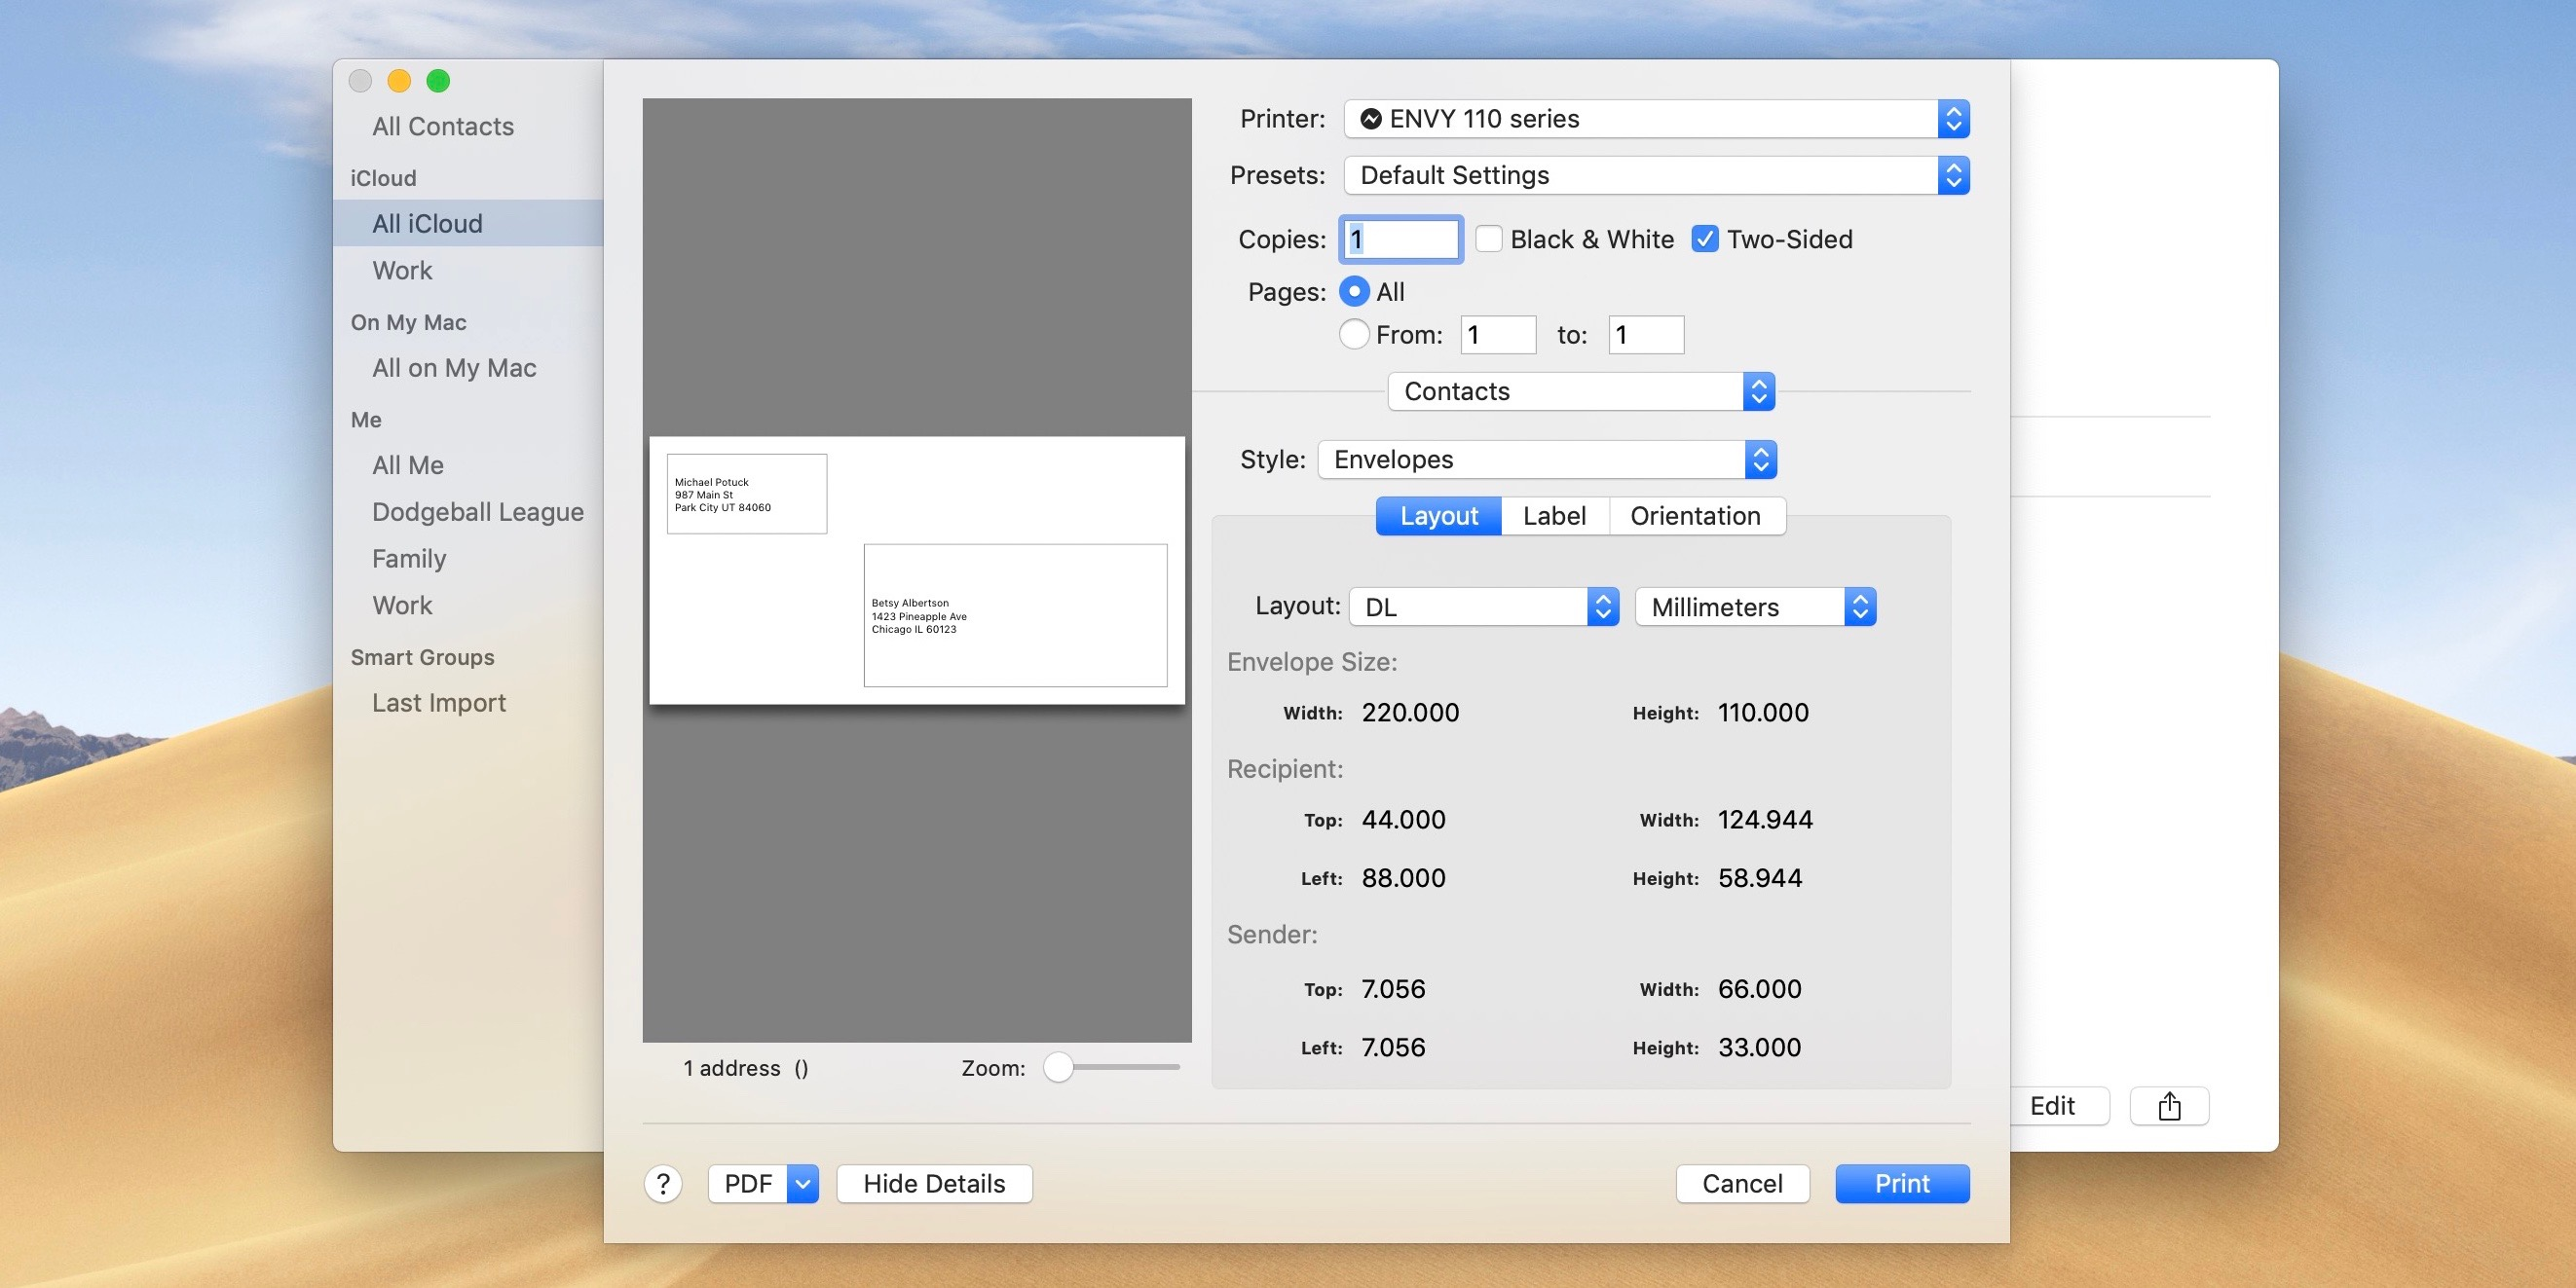 How to print contact info to envelopes, lists, and labels on Mac